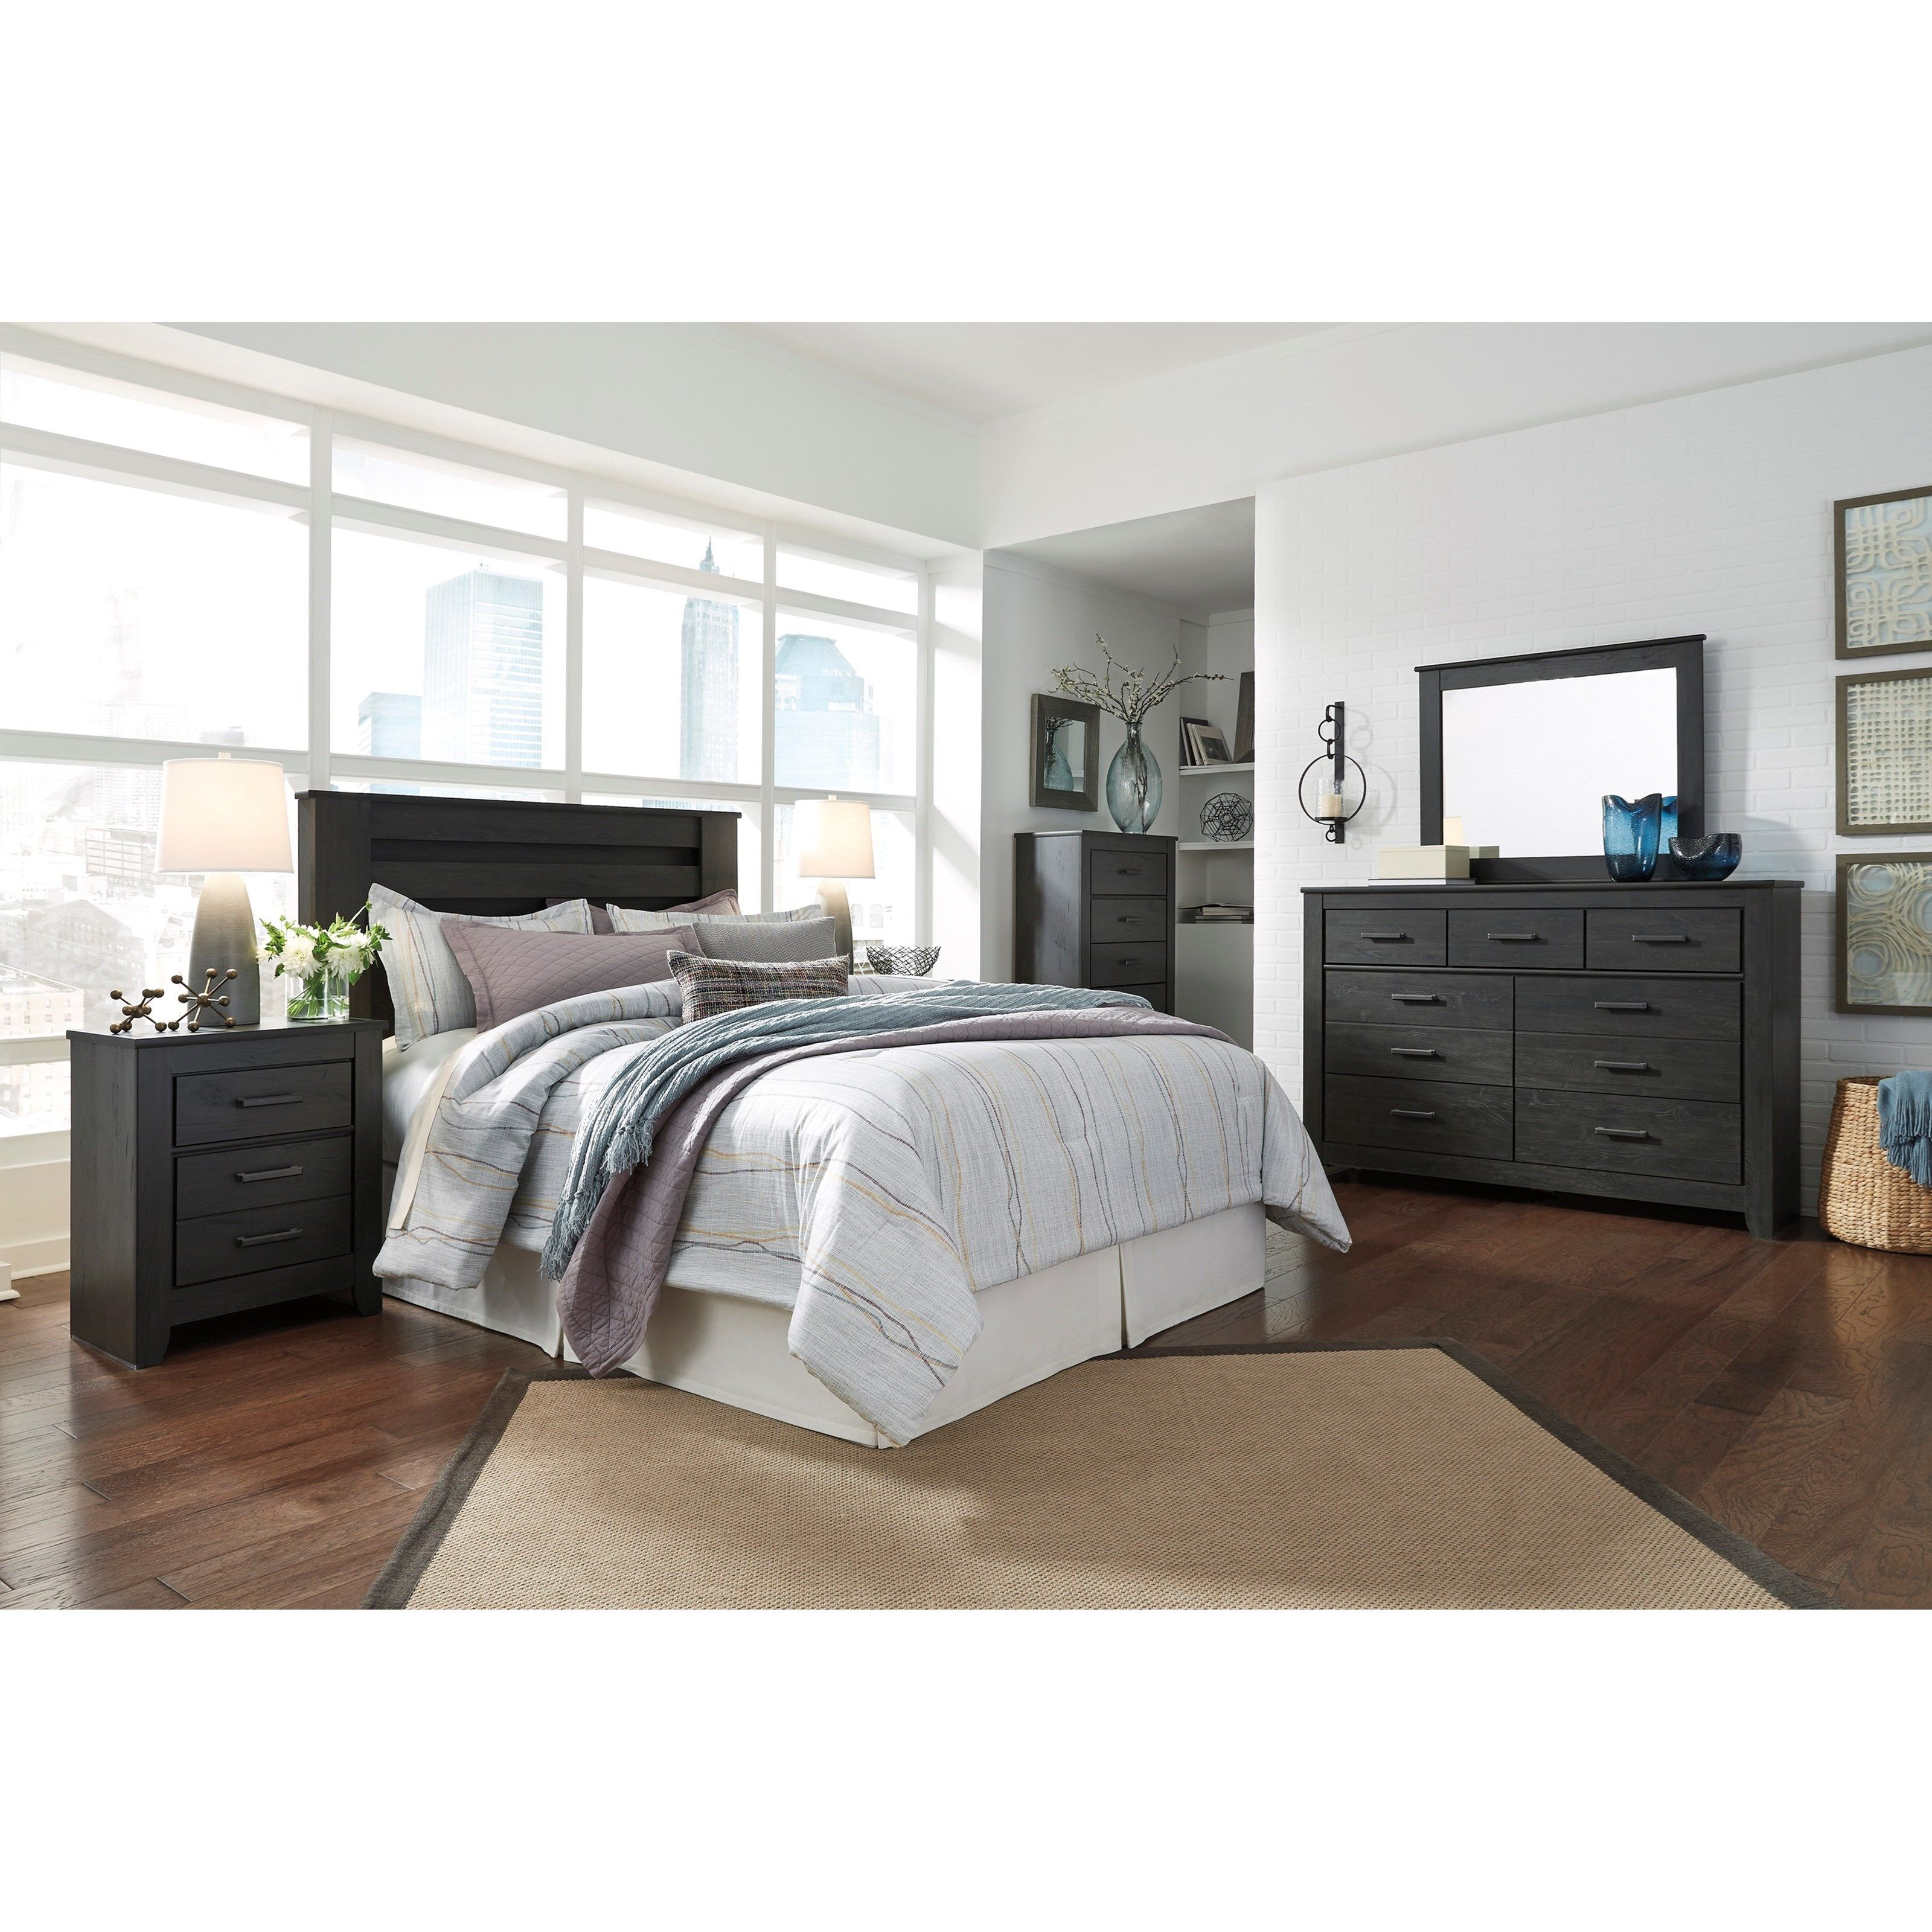 Brinxton King California King Bedroom Group By Signature Design By